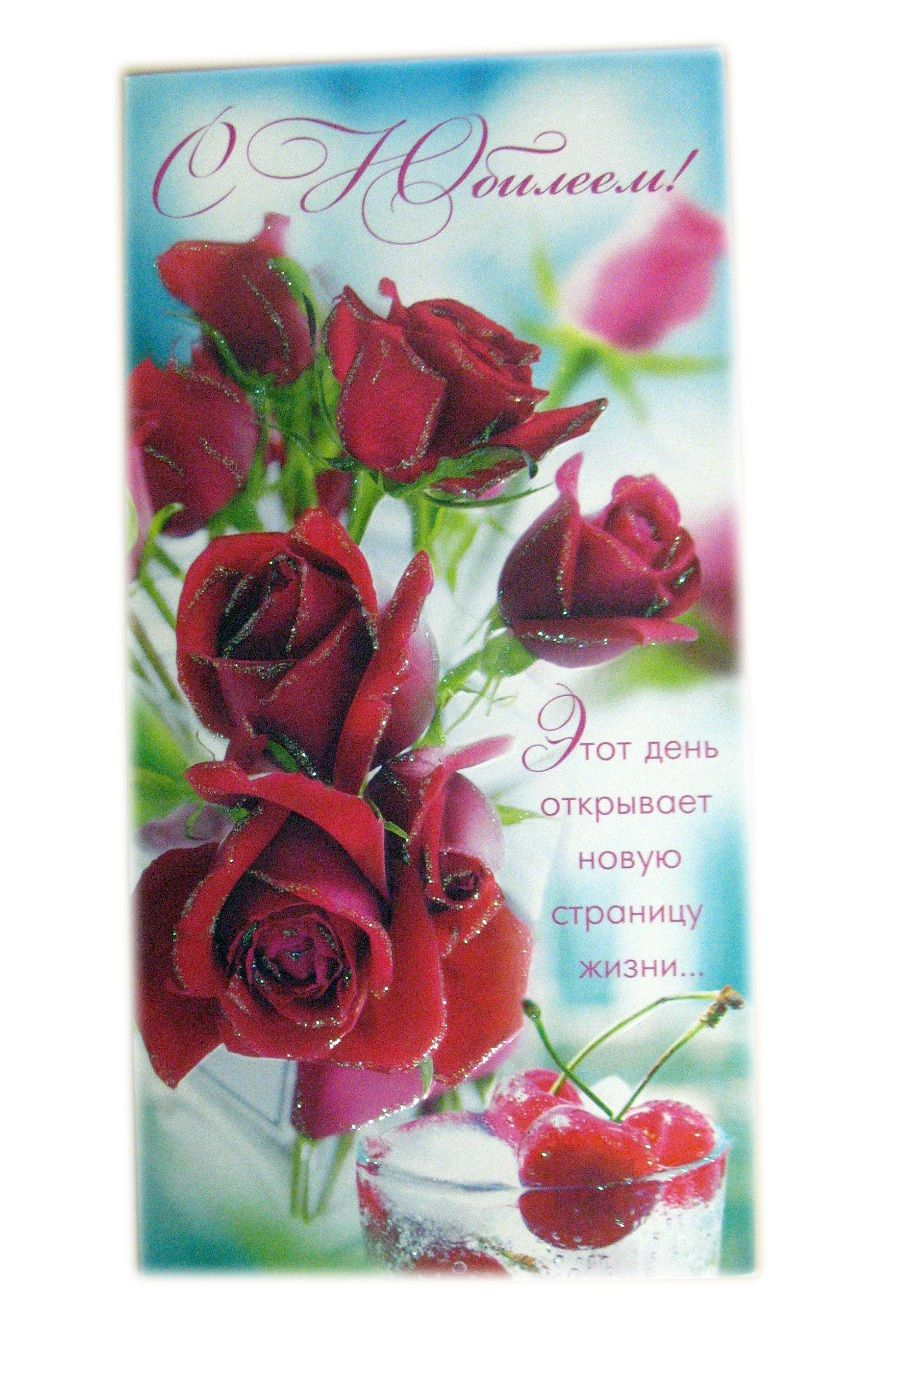 Russian birthday card my birthday pinterest birthdays russian birthday card kristyandbryce Image collections